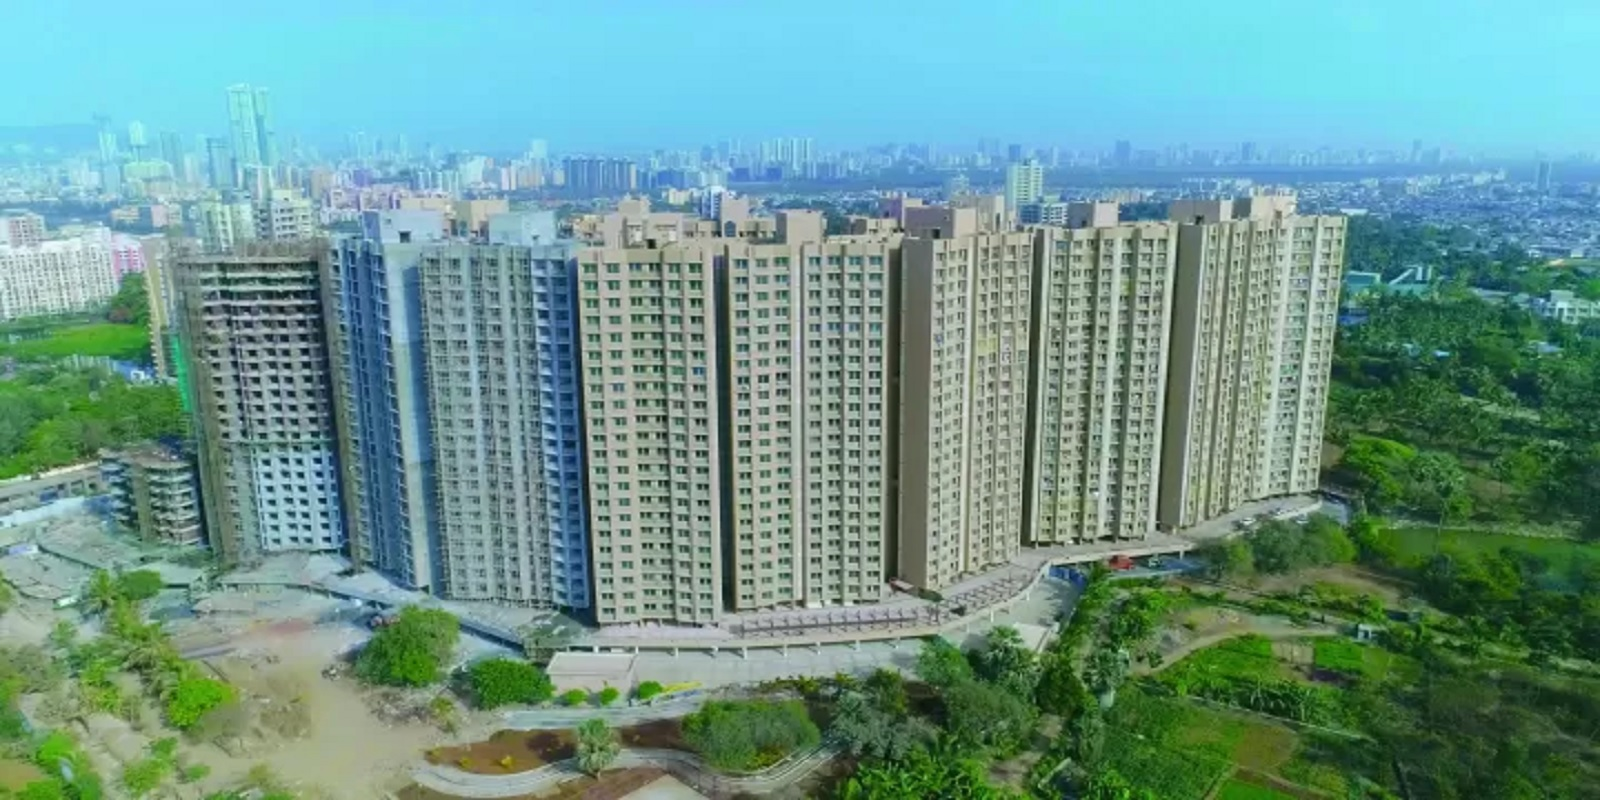 gurukrupa marina enclave wing k and l phase i project project large image1